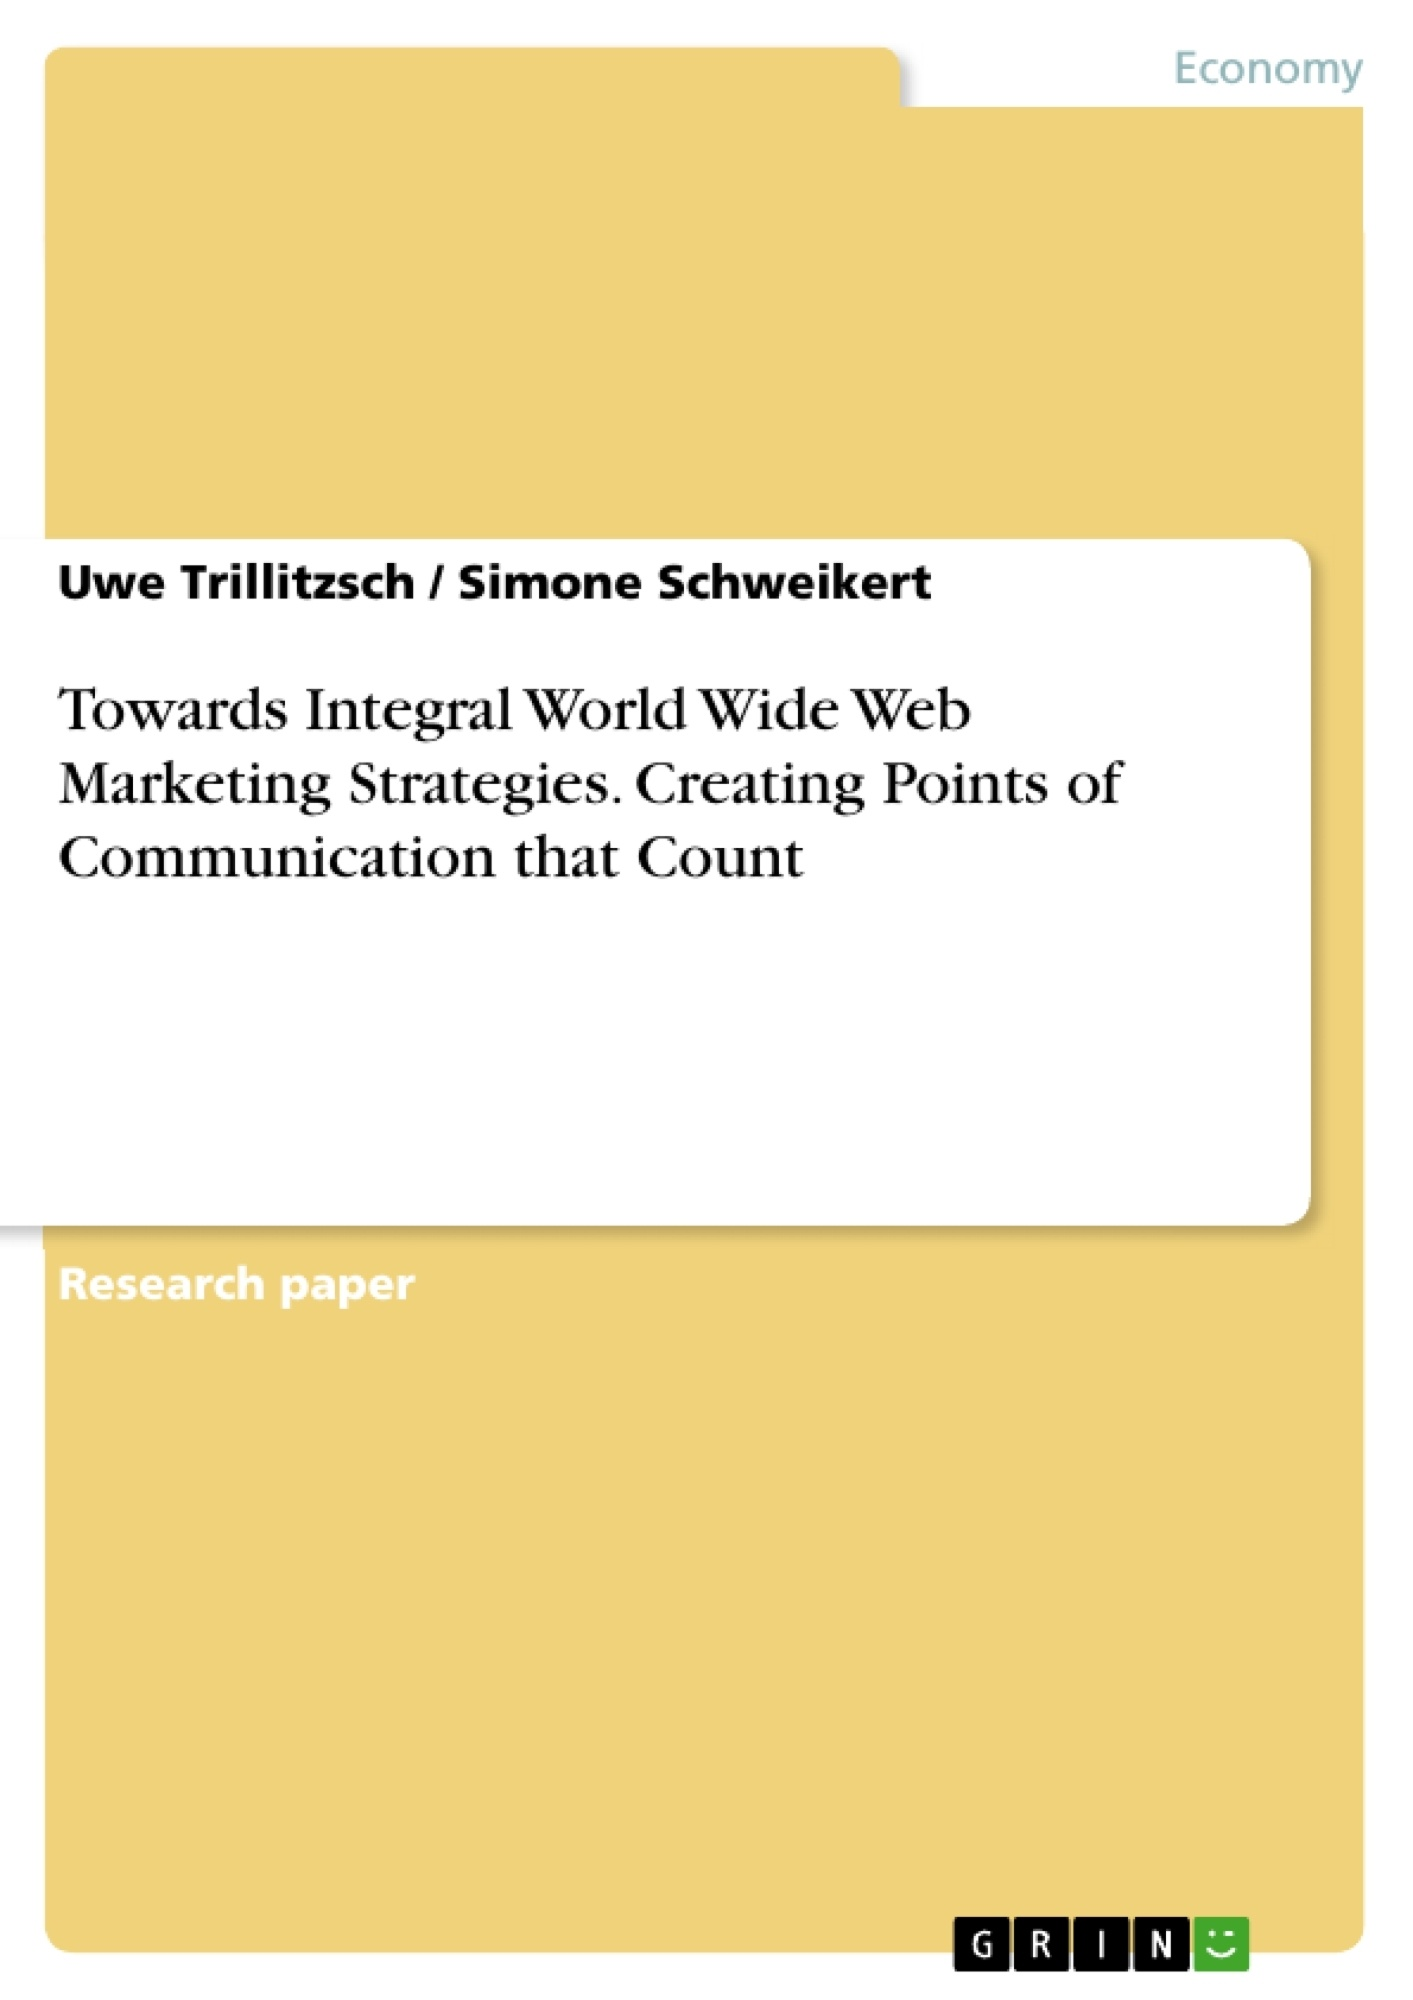 Title: Towards Integral World Wide Web Marketing Strategies. Creating Points of Communication that Count